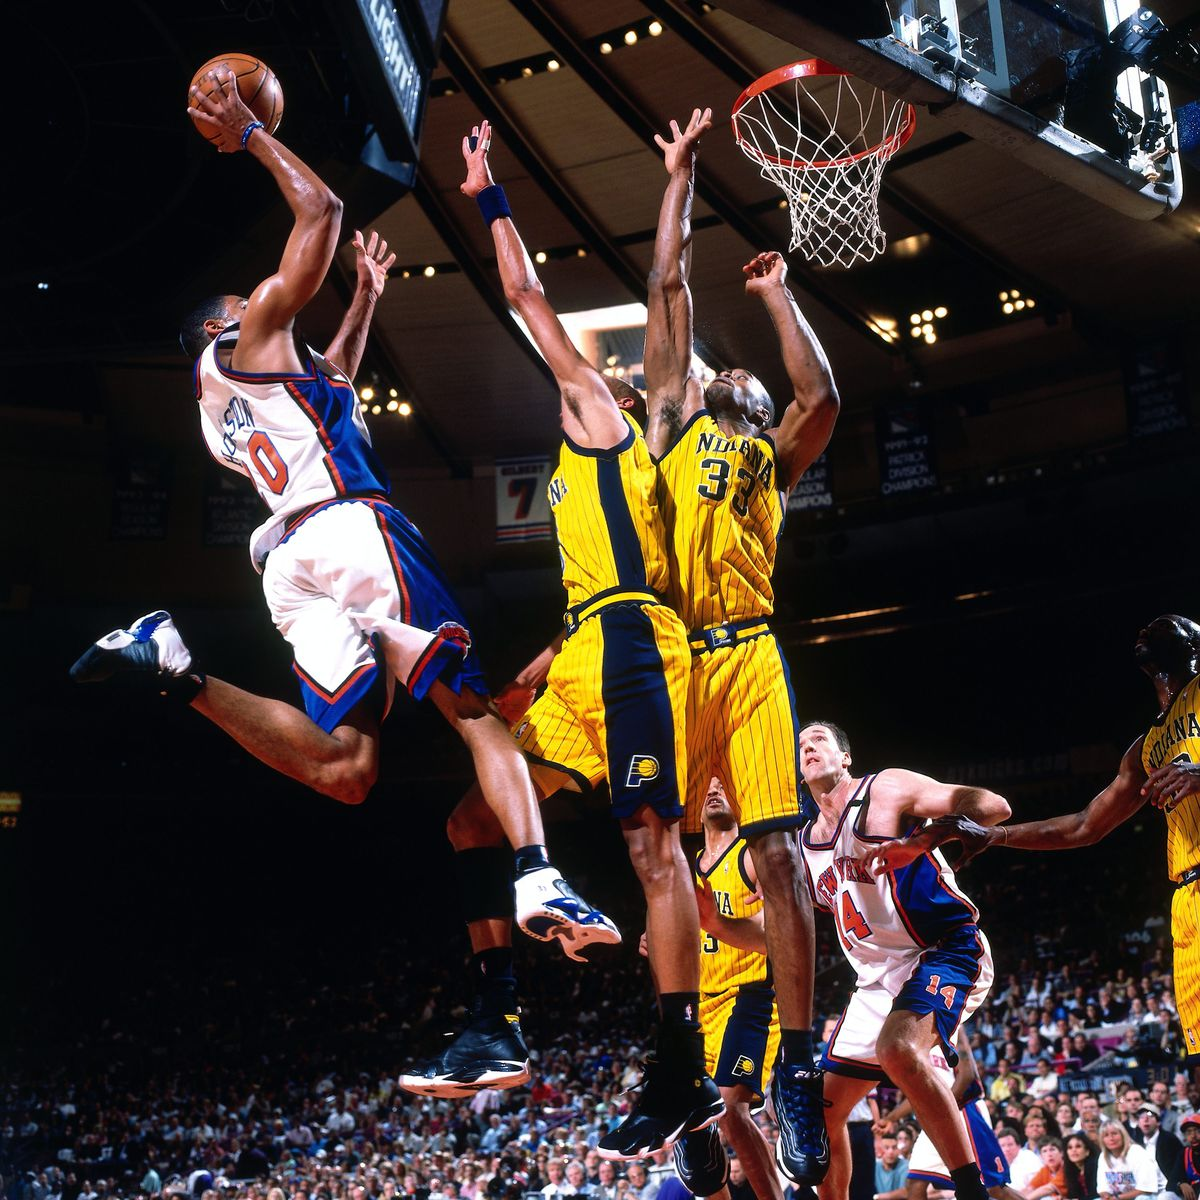 1999 Eastern Conference Finals, Game 3: Indiana Pacers vs. New York Knicks